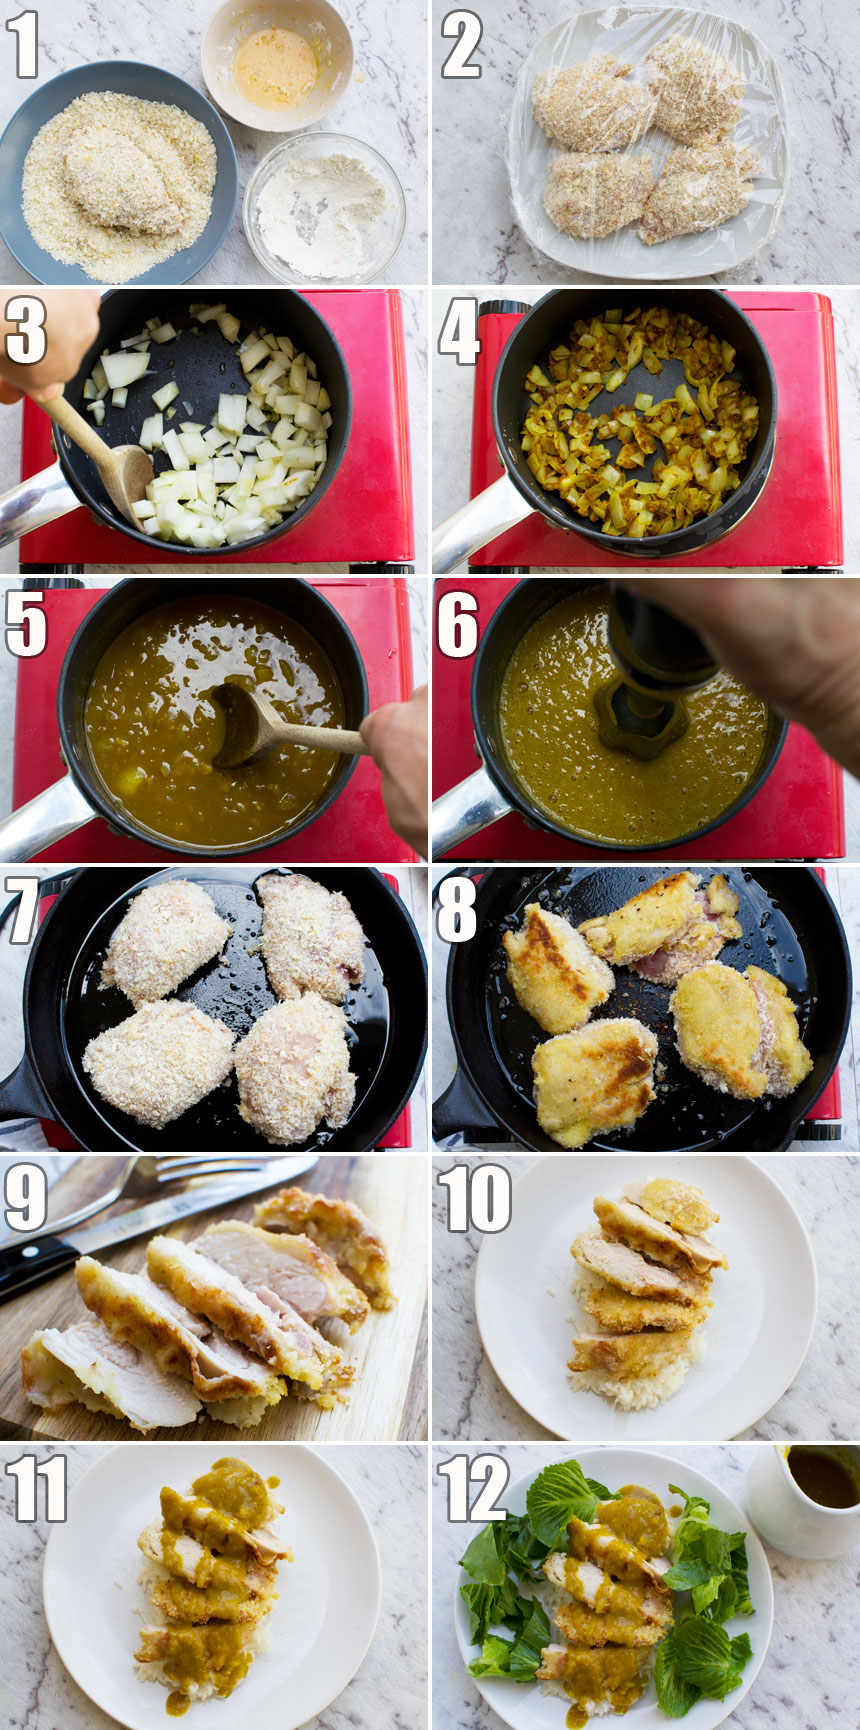 A series of 12 process photos showing how to make a chicken katsu curry